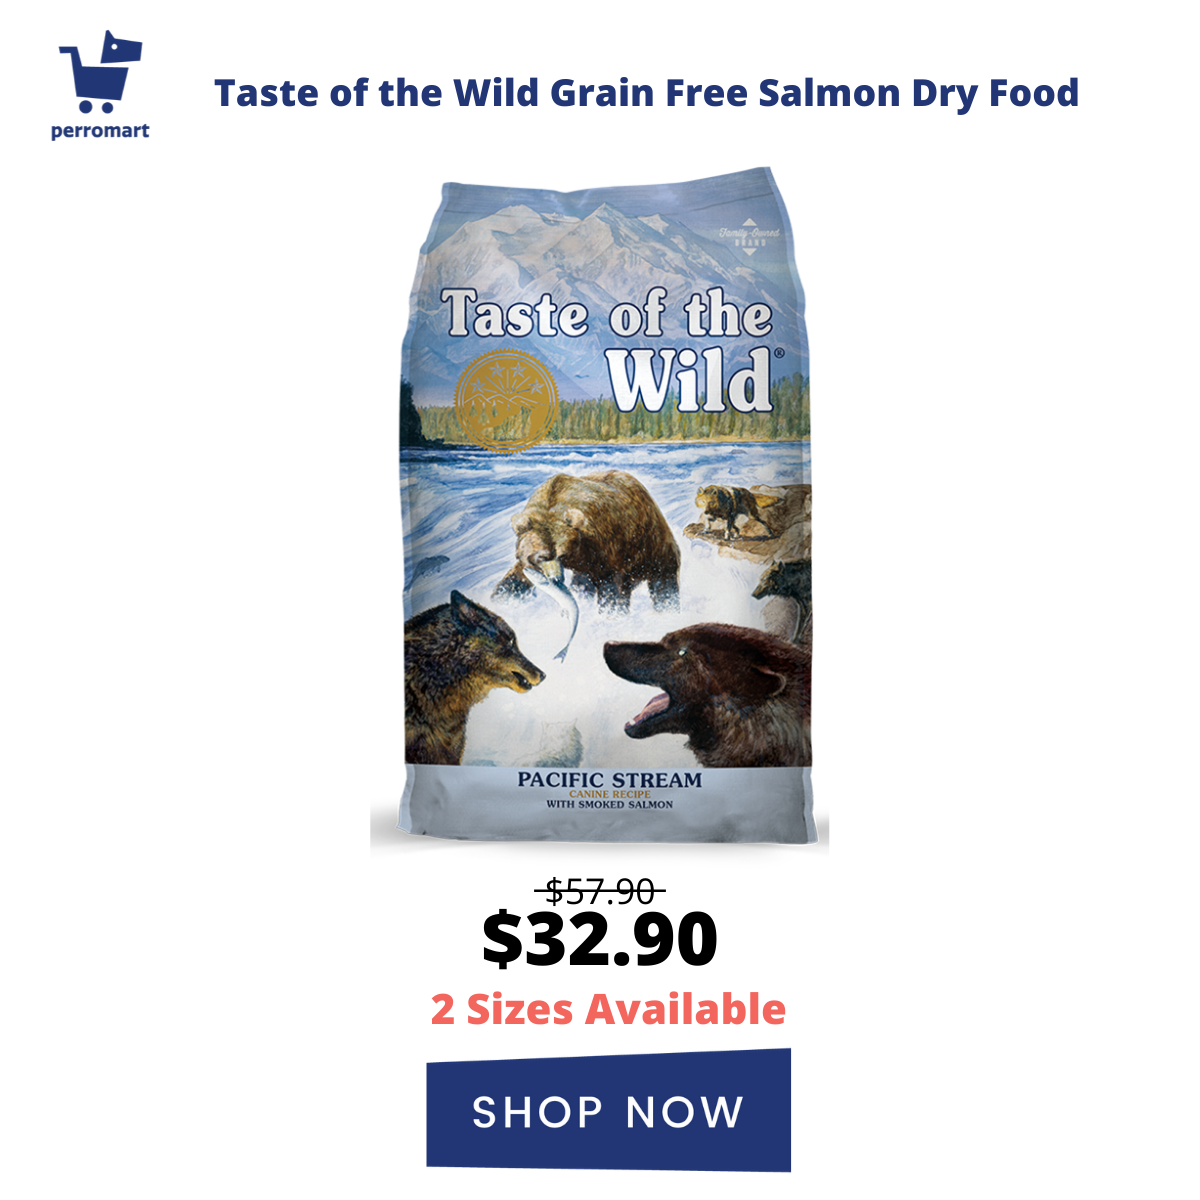 Taste Of The Wild Pacific Stream with Smoked Salmon Canine Dry Dog Food (2 Sizes)